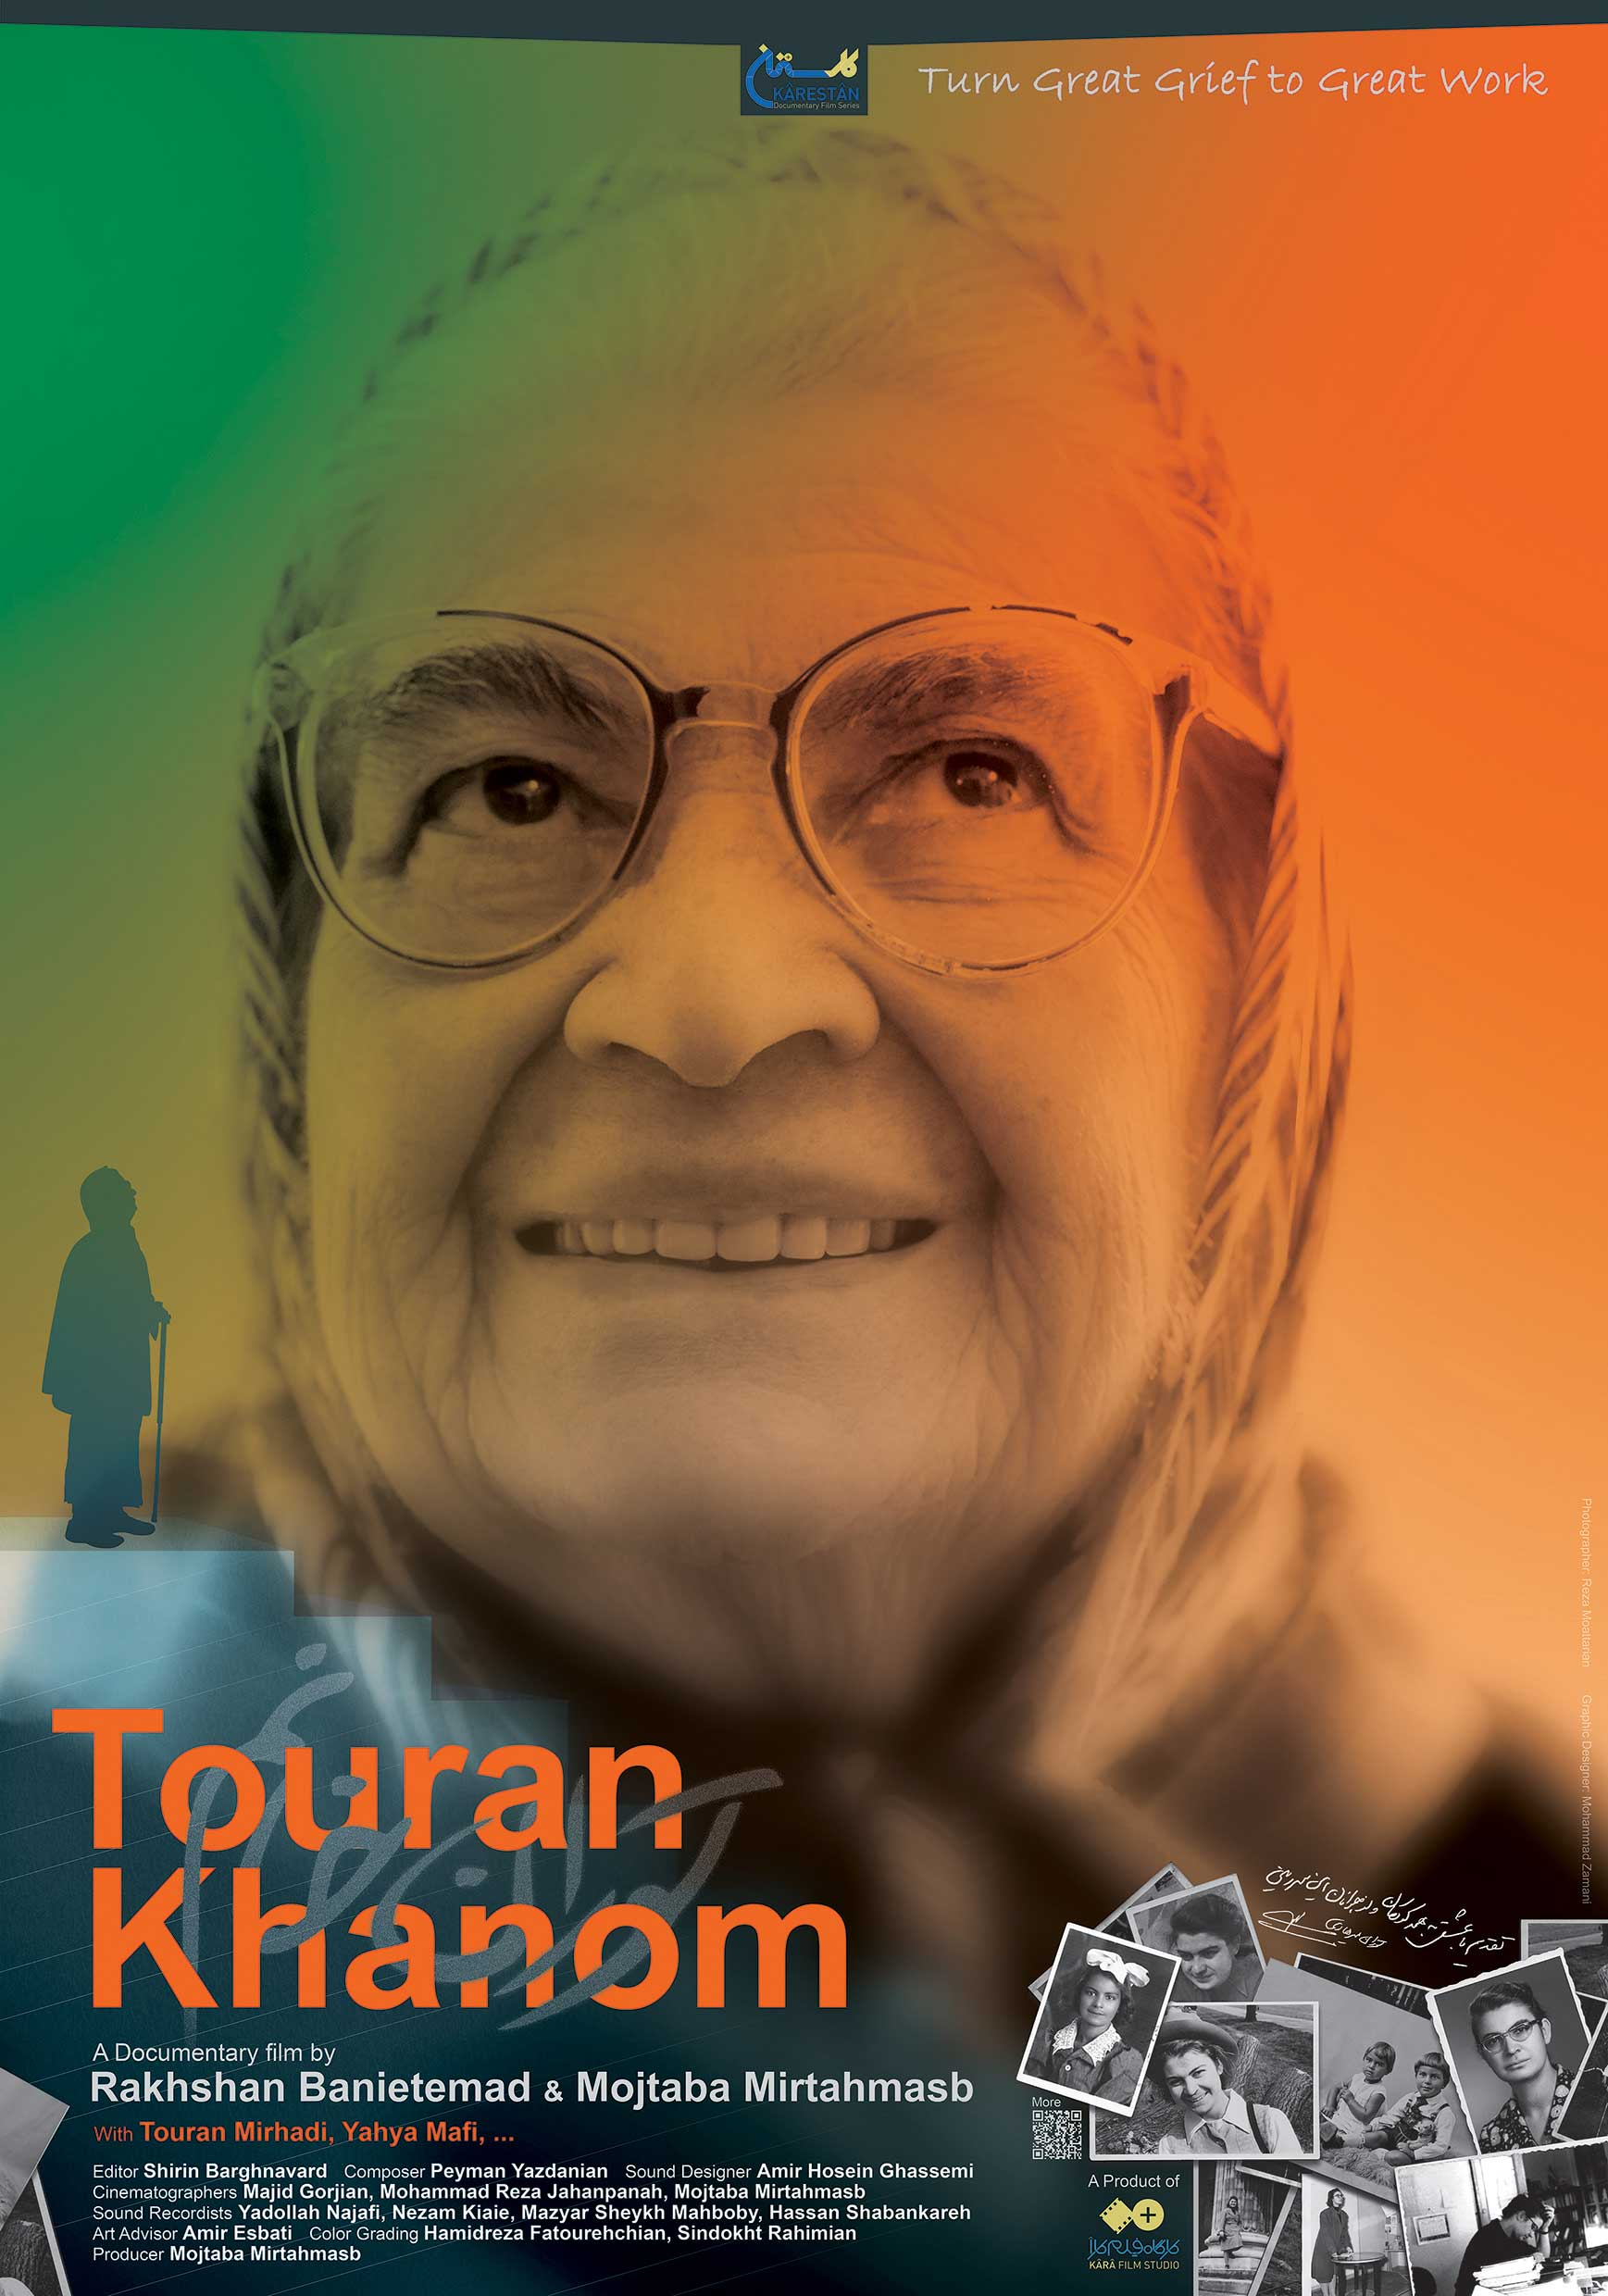 TOURAN KHANOM // An Iranian Film Coming to Virtual Cinema November 20, 2020 - December 3, 2020